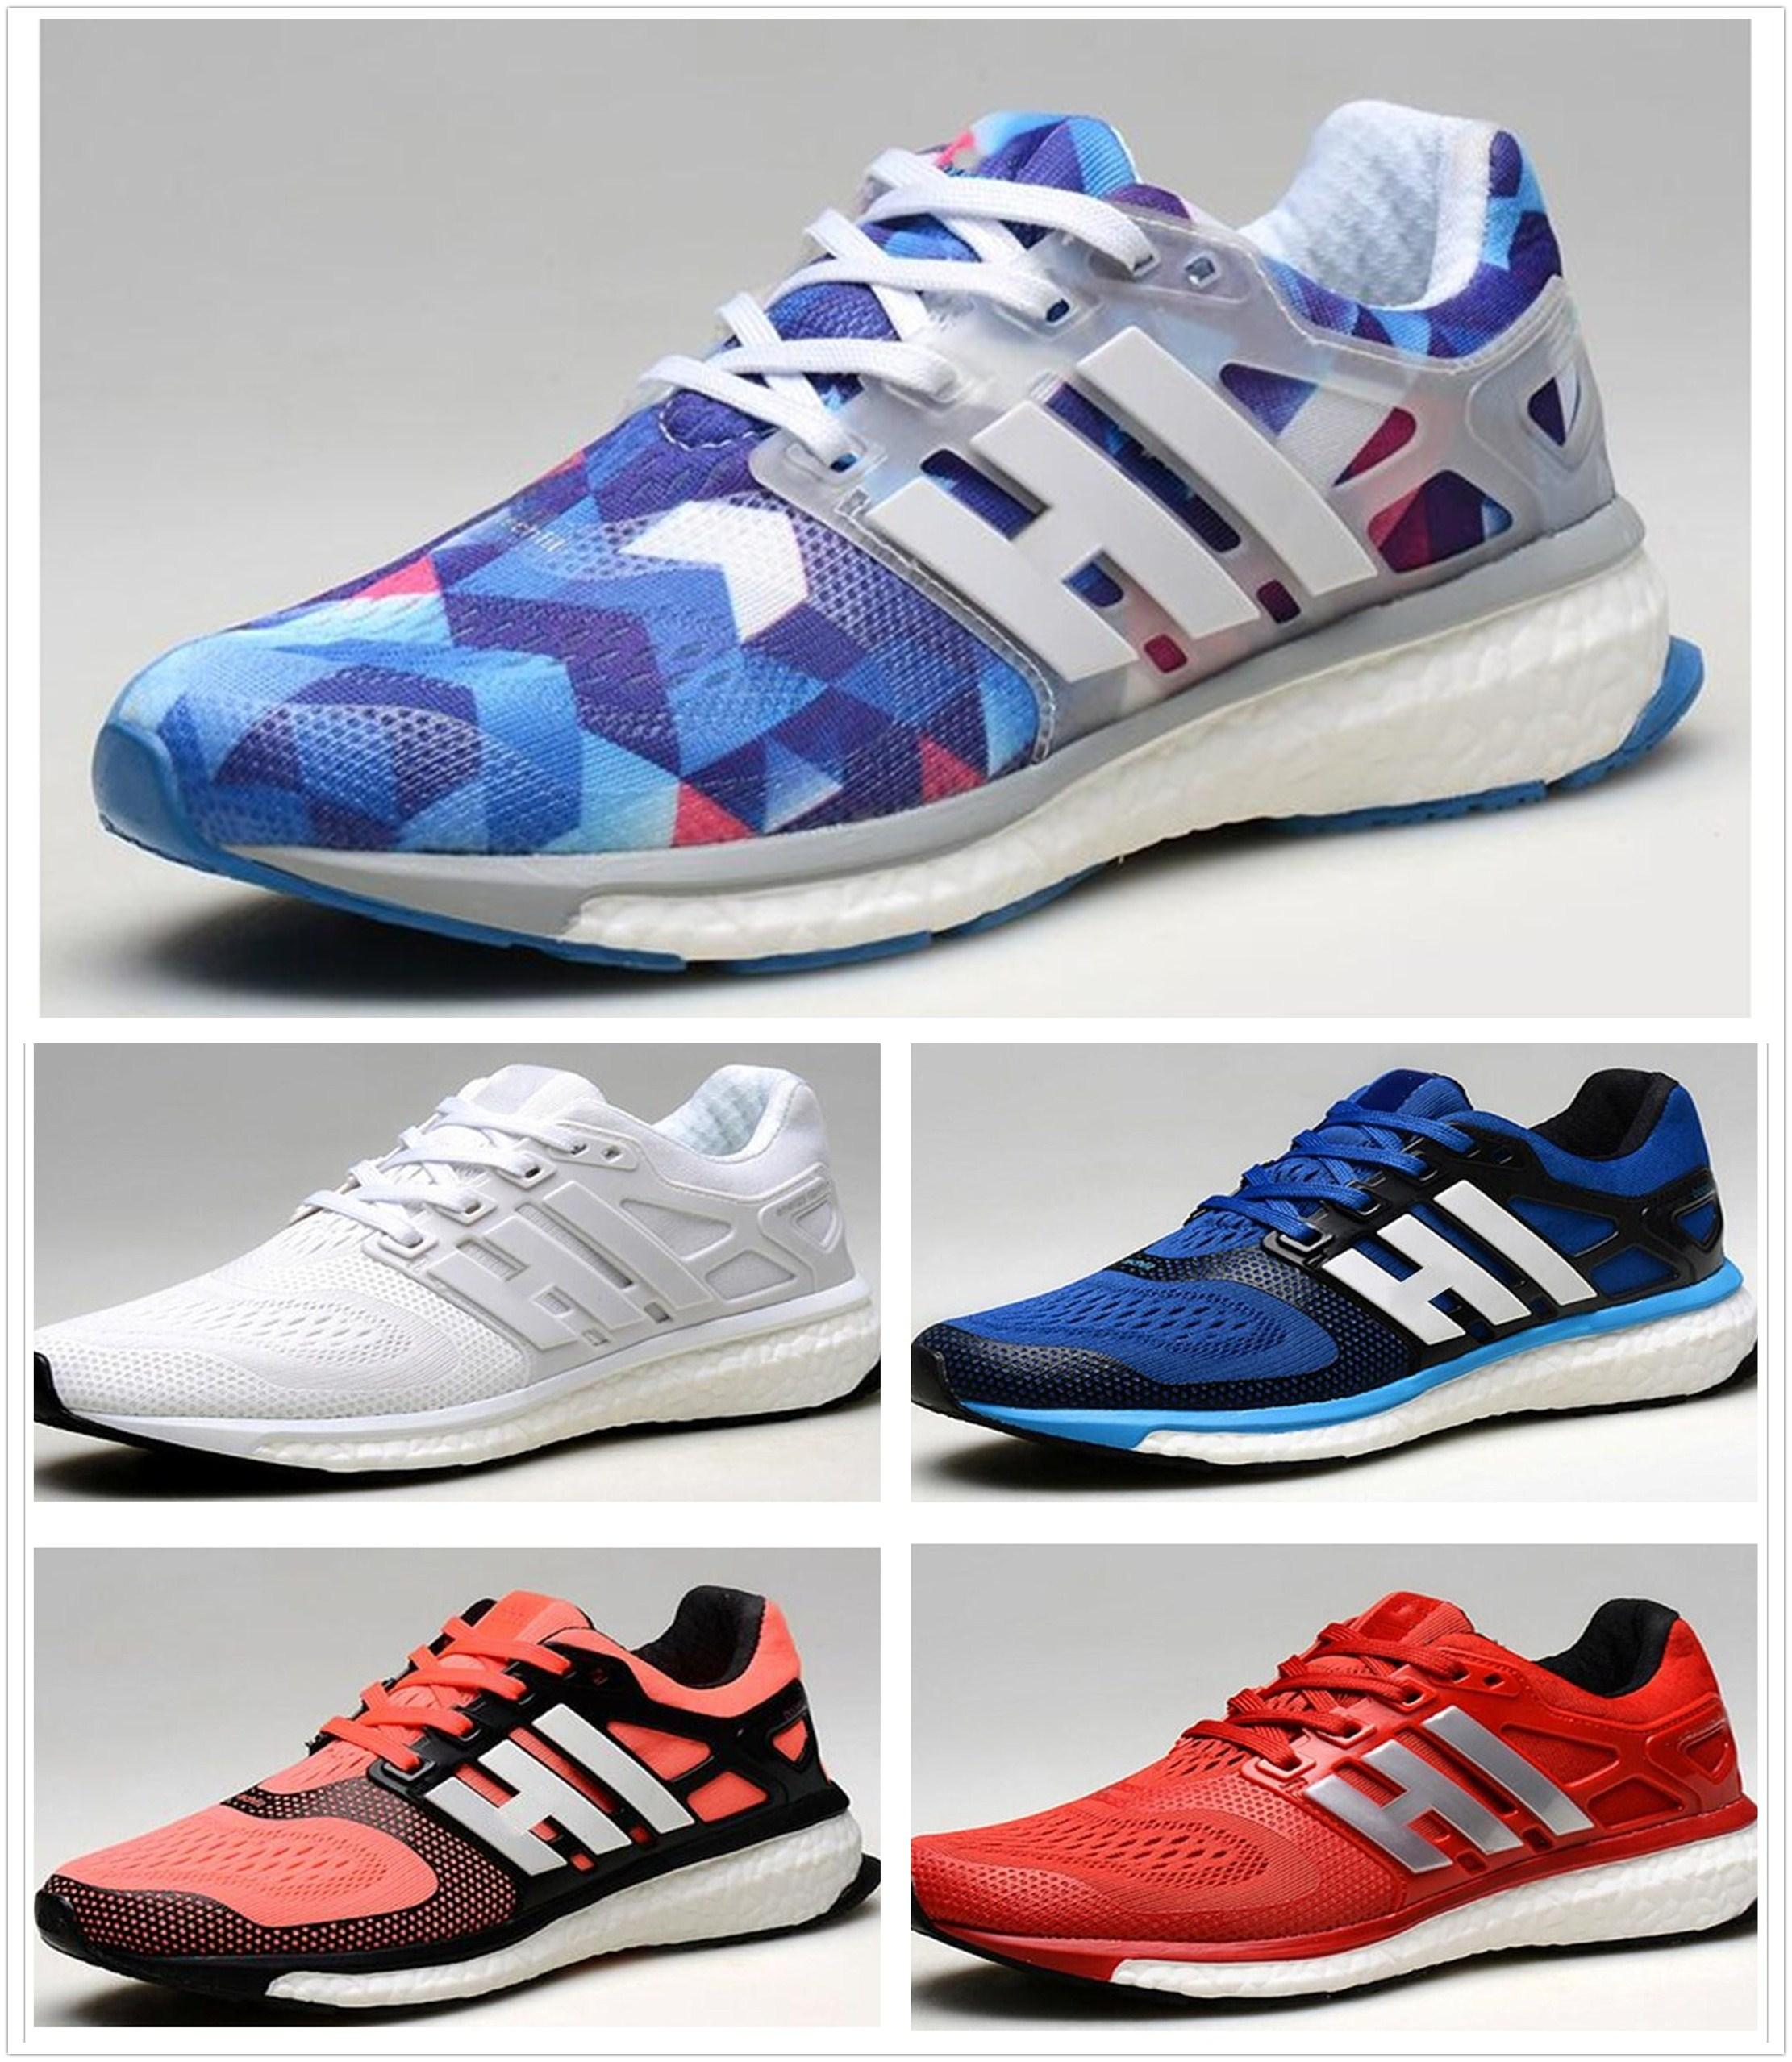 2017 Energy Boost 2 ESM Ultra Boost Genuine Leather Running Shoes Men Women  High Quality Shoes Athletic Shoes Size Toddler Boys Dress Shoes Best Shoes  For ... 341c208ded